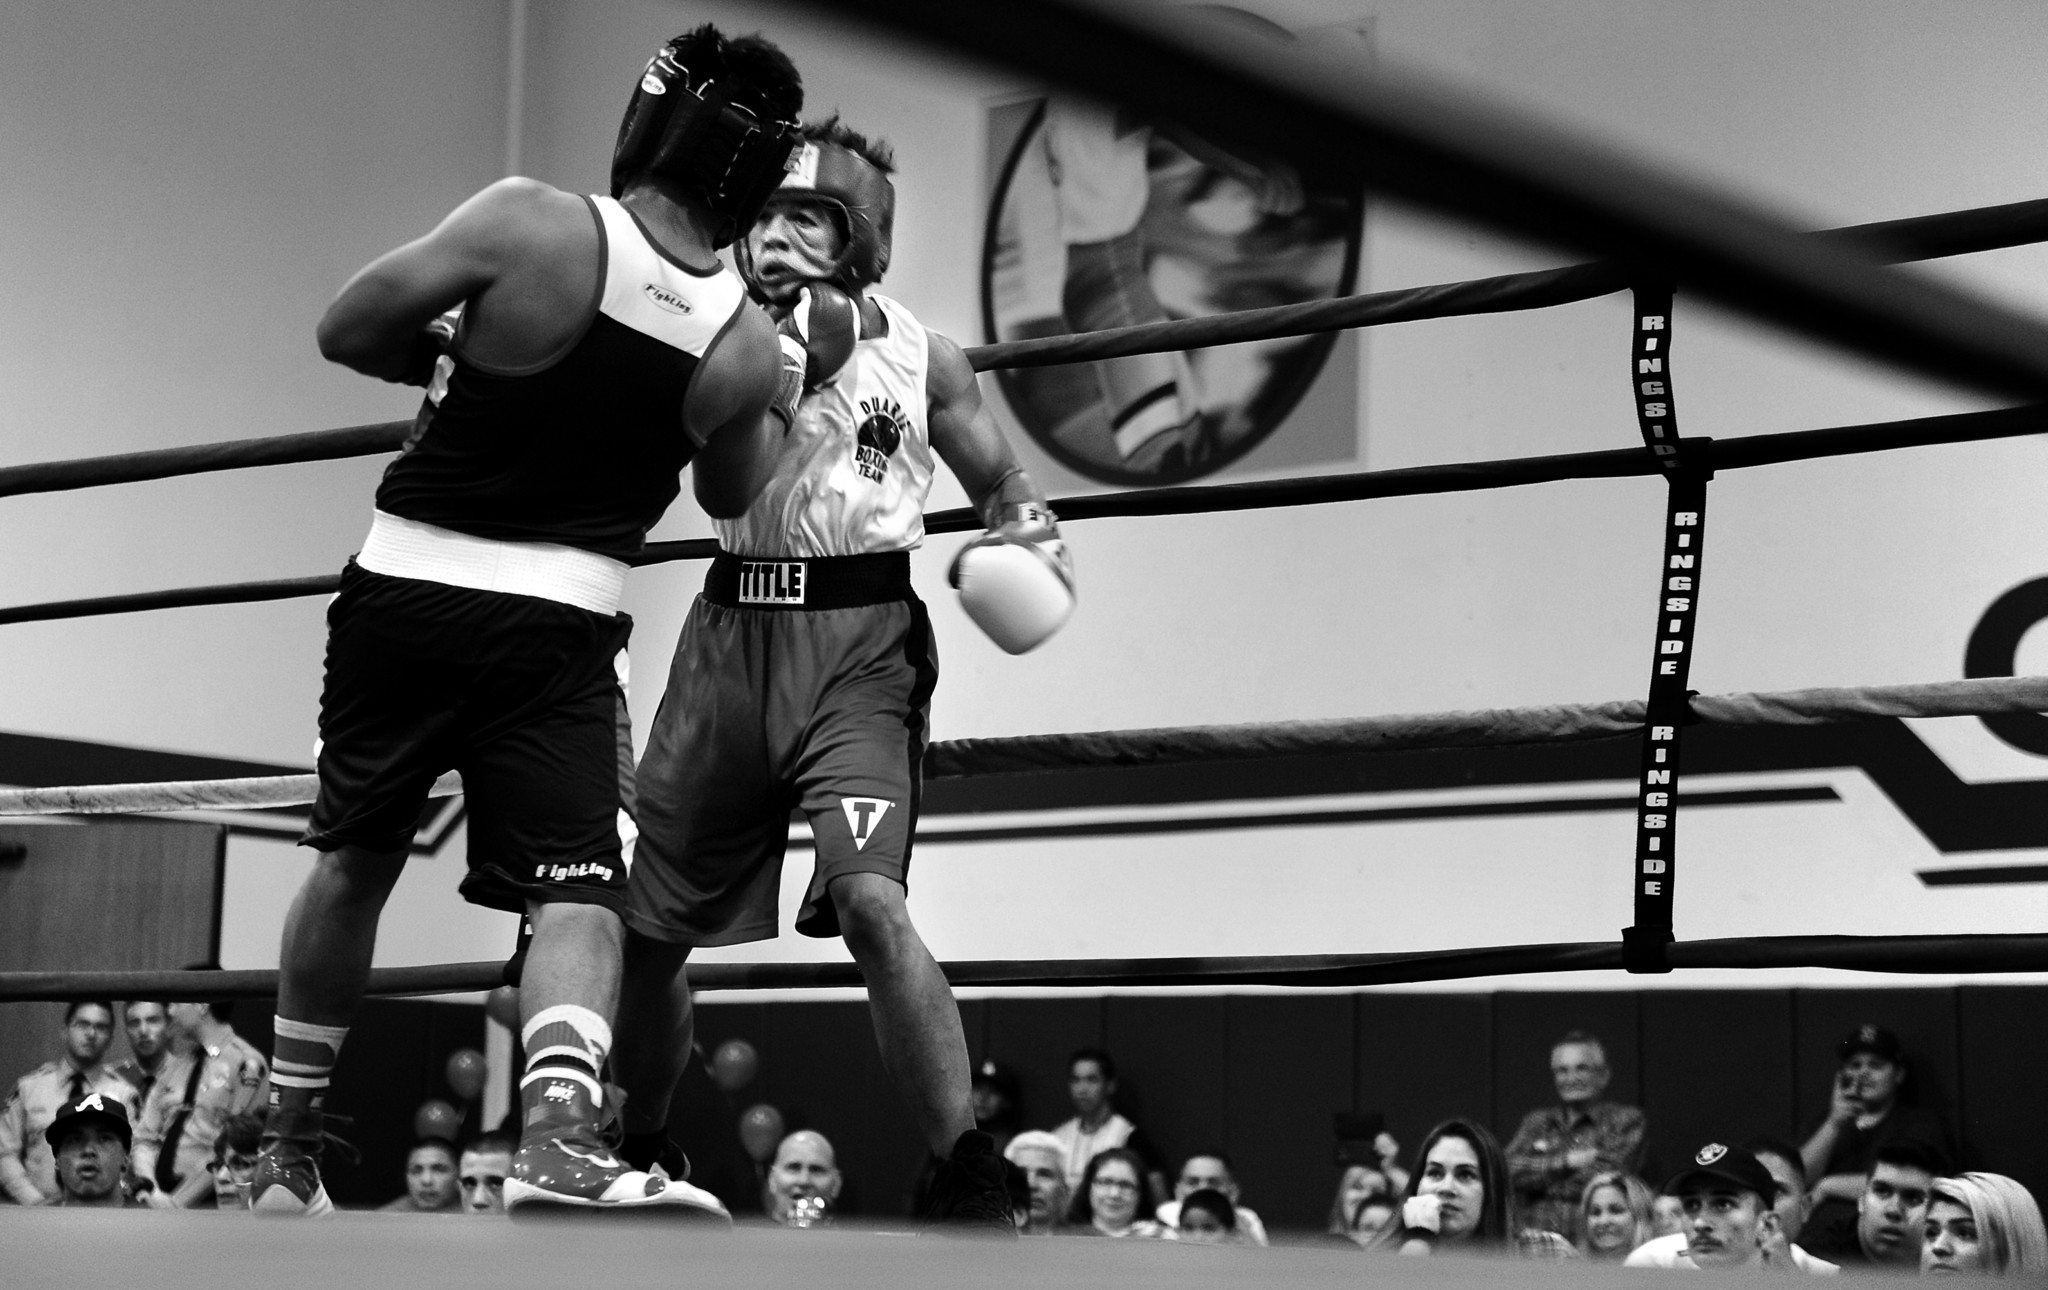 Pat takes a punch in the opening round during his first match as a male boxer at a tournament in Covina.